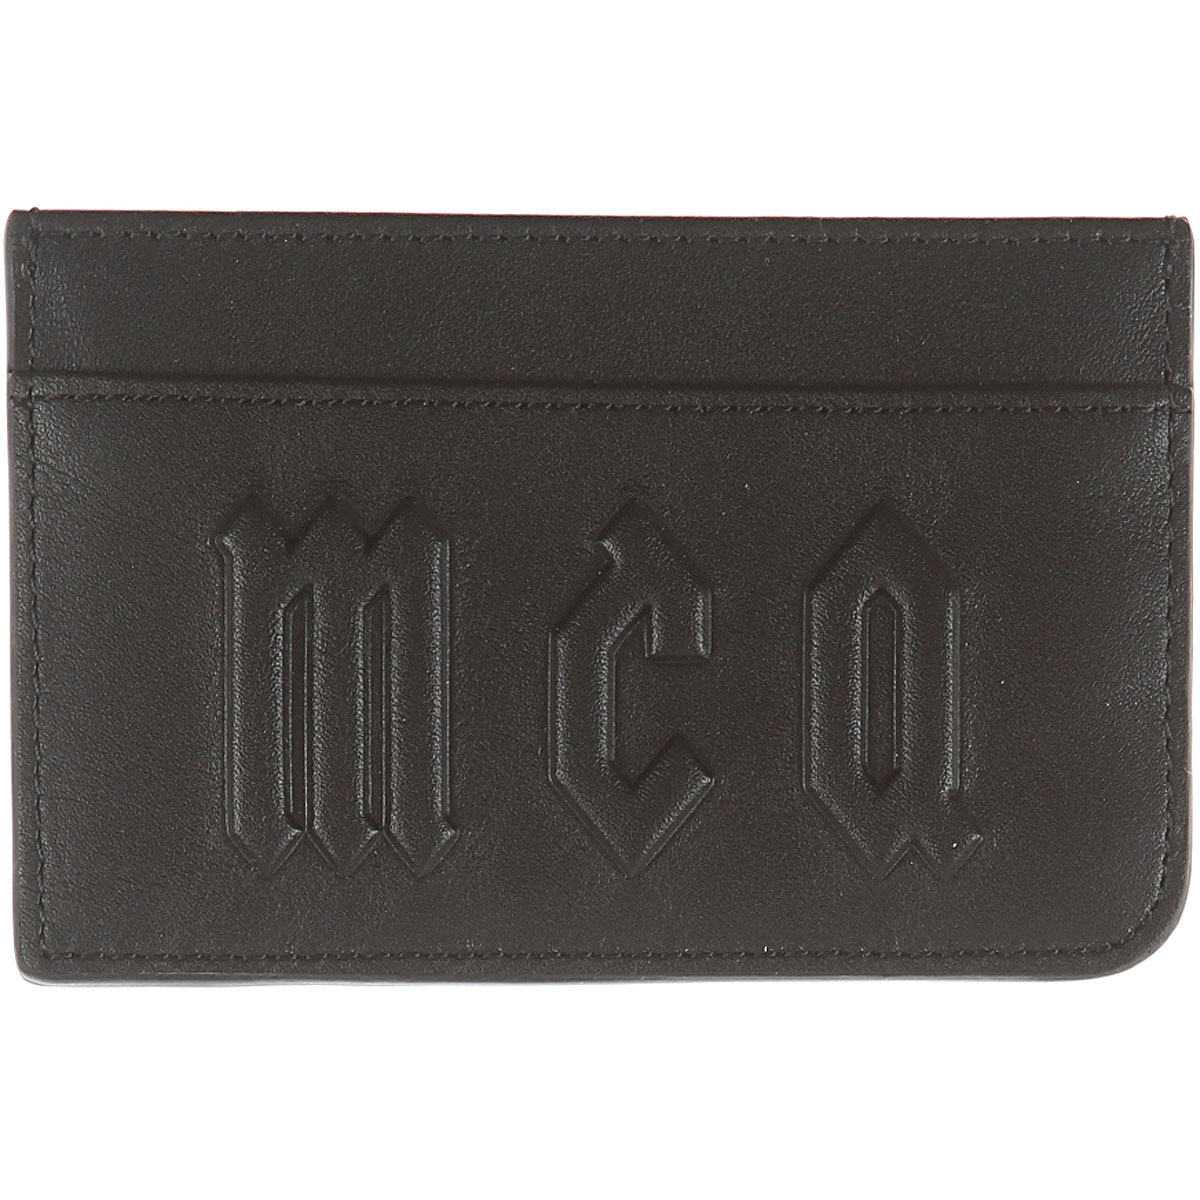 Image of Alexander McQueen McQ Card Holder for Men, Black, Leather, 2017